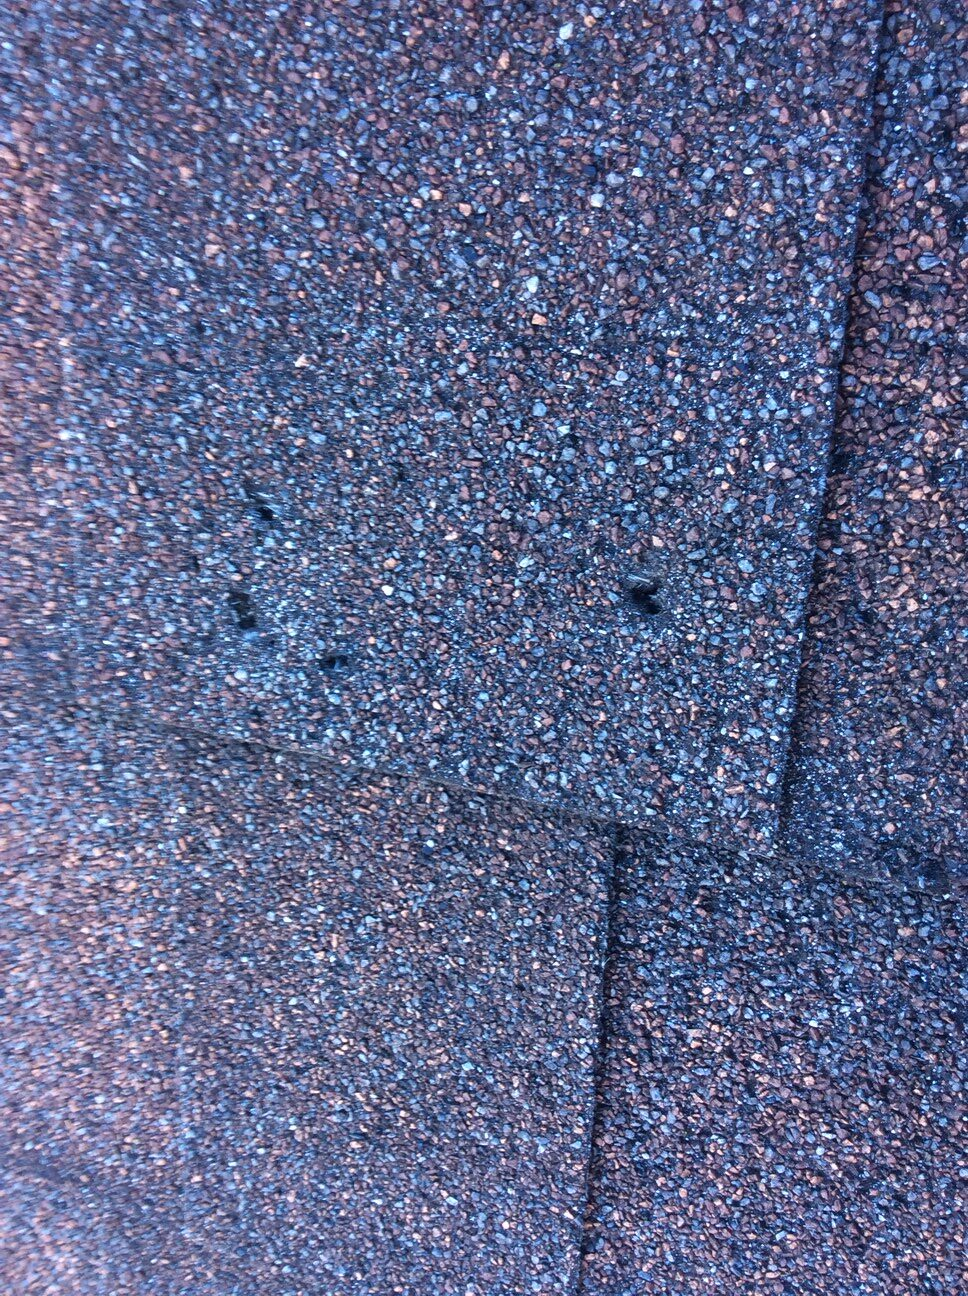 Theses are shingles that will need to be replaced. They have exposed holes..